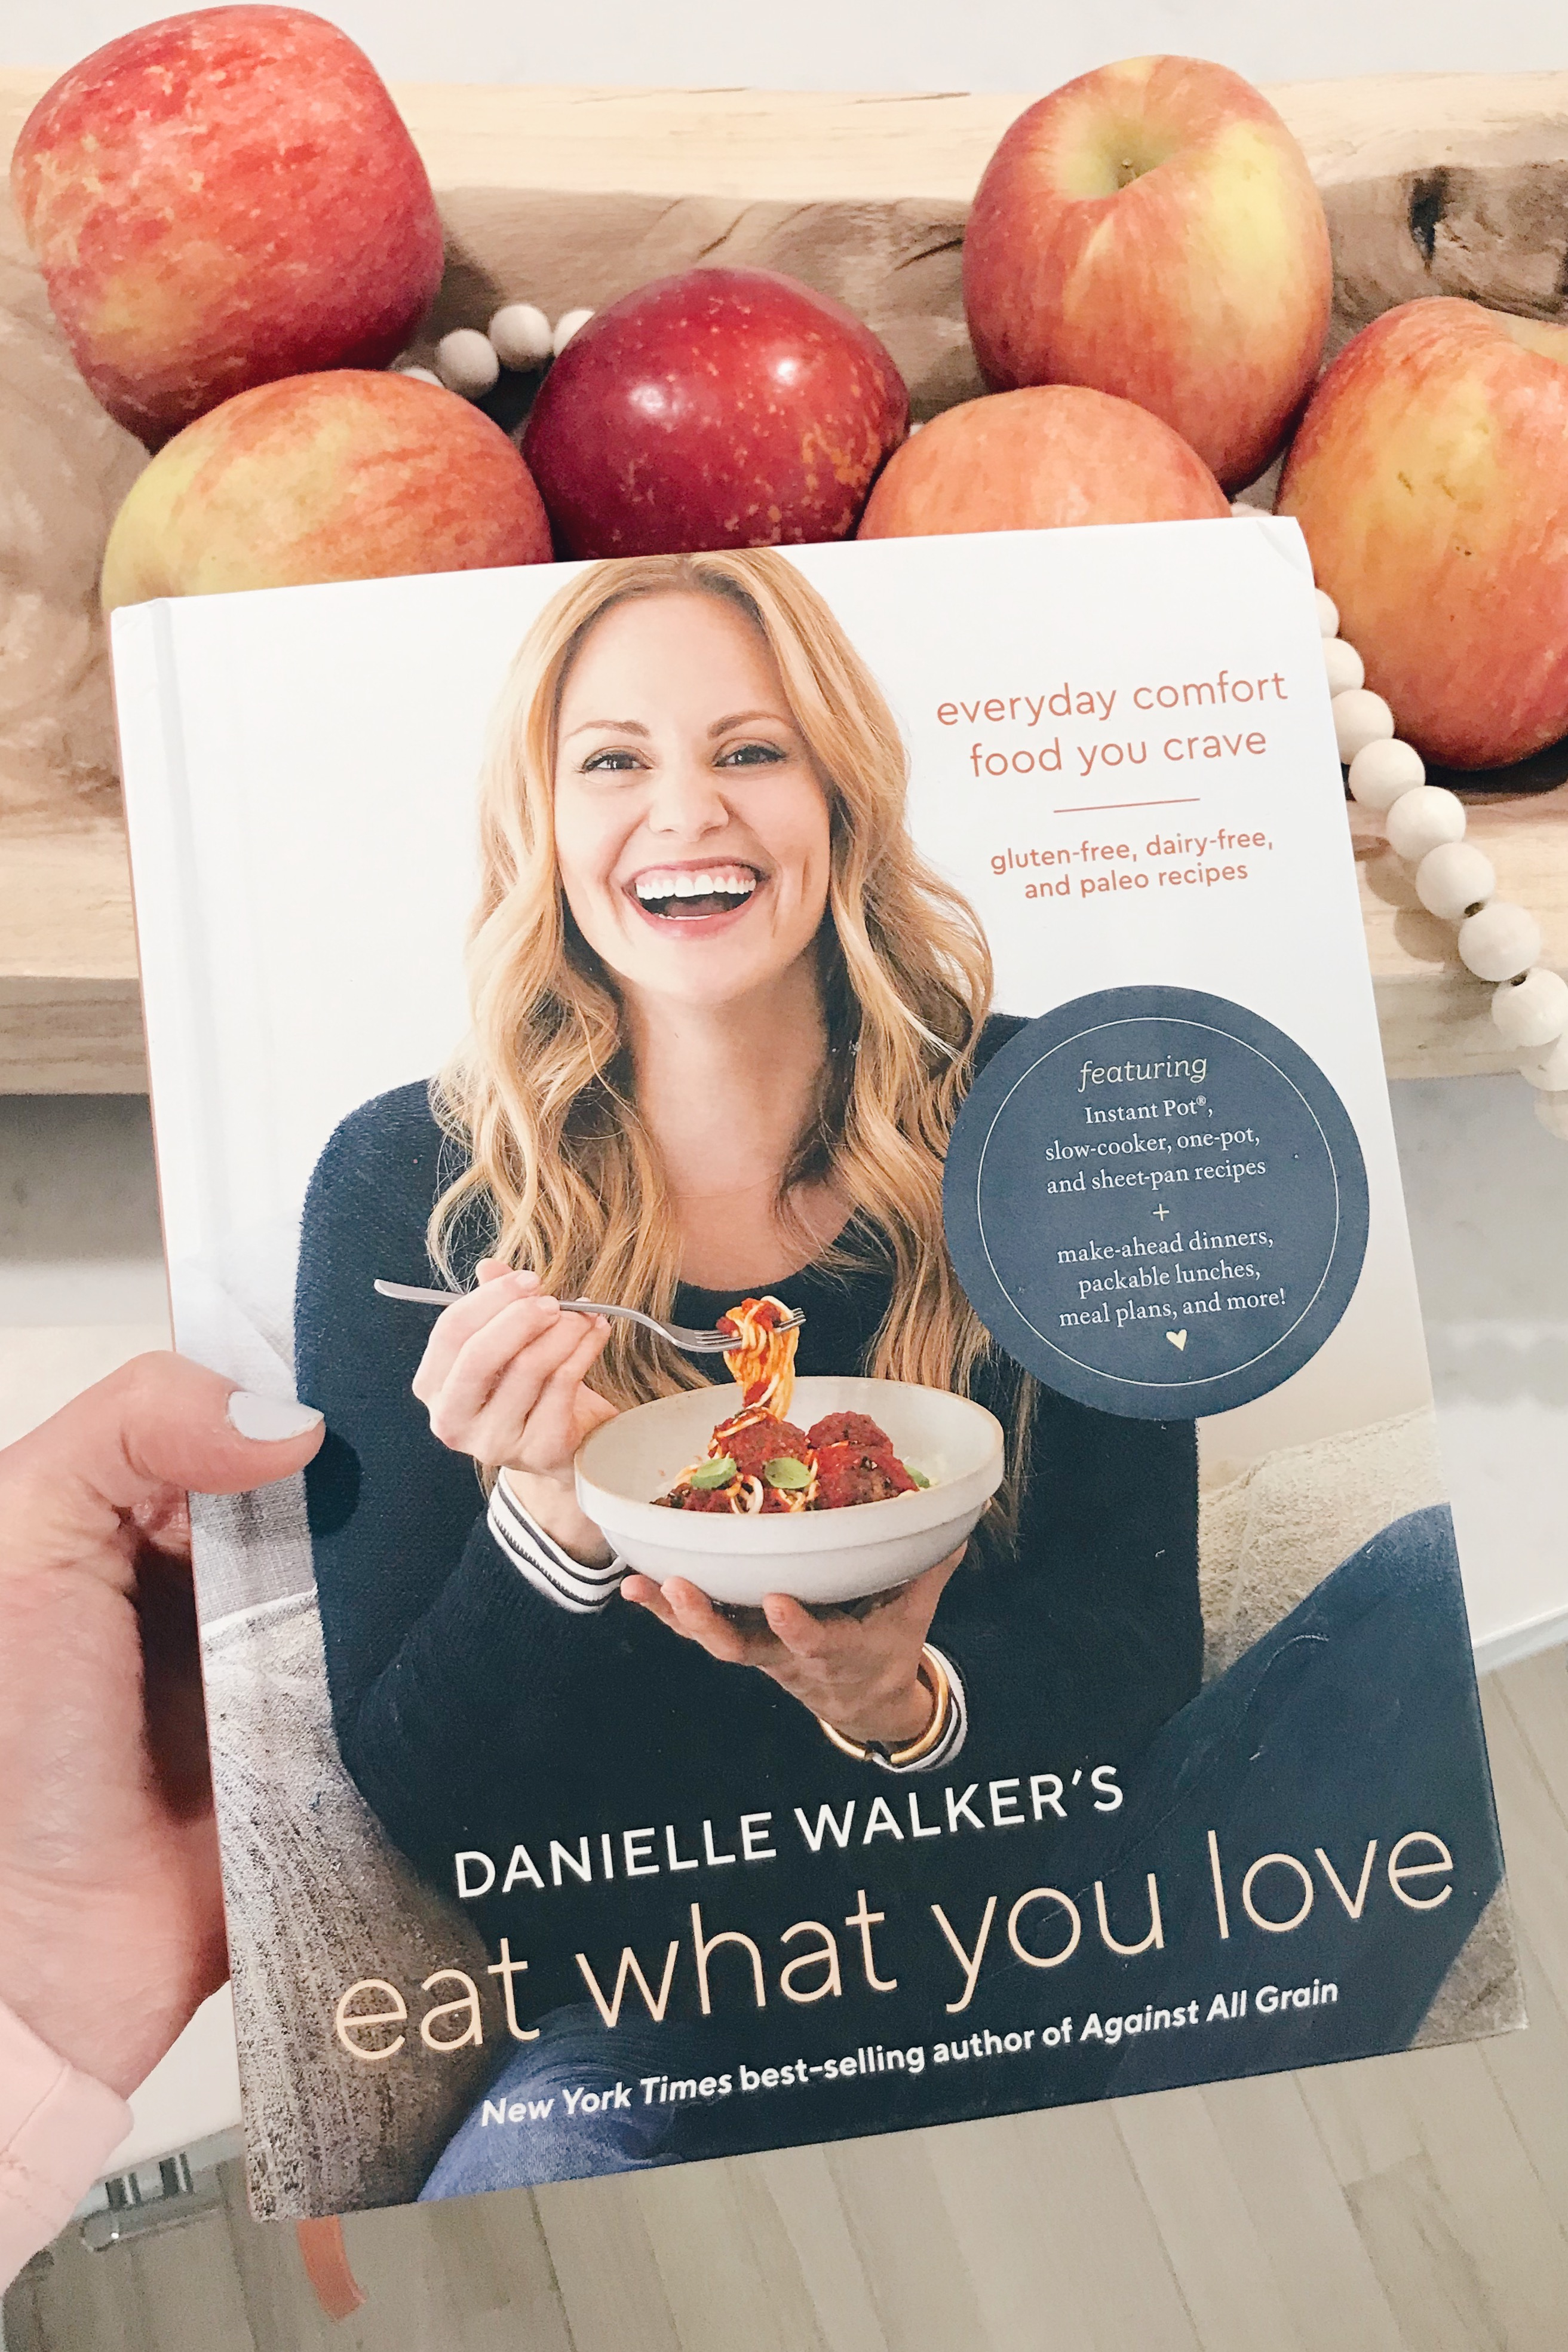 healthy dinner recipes on pinteresting plans blog - danielle walker's book - favorite recipes